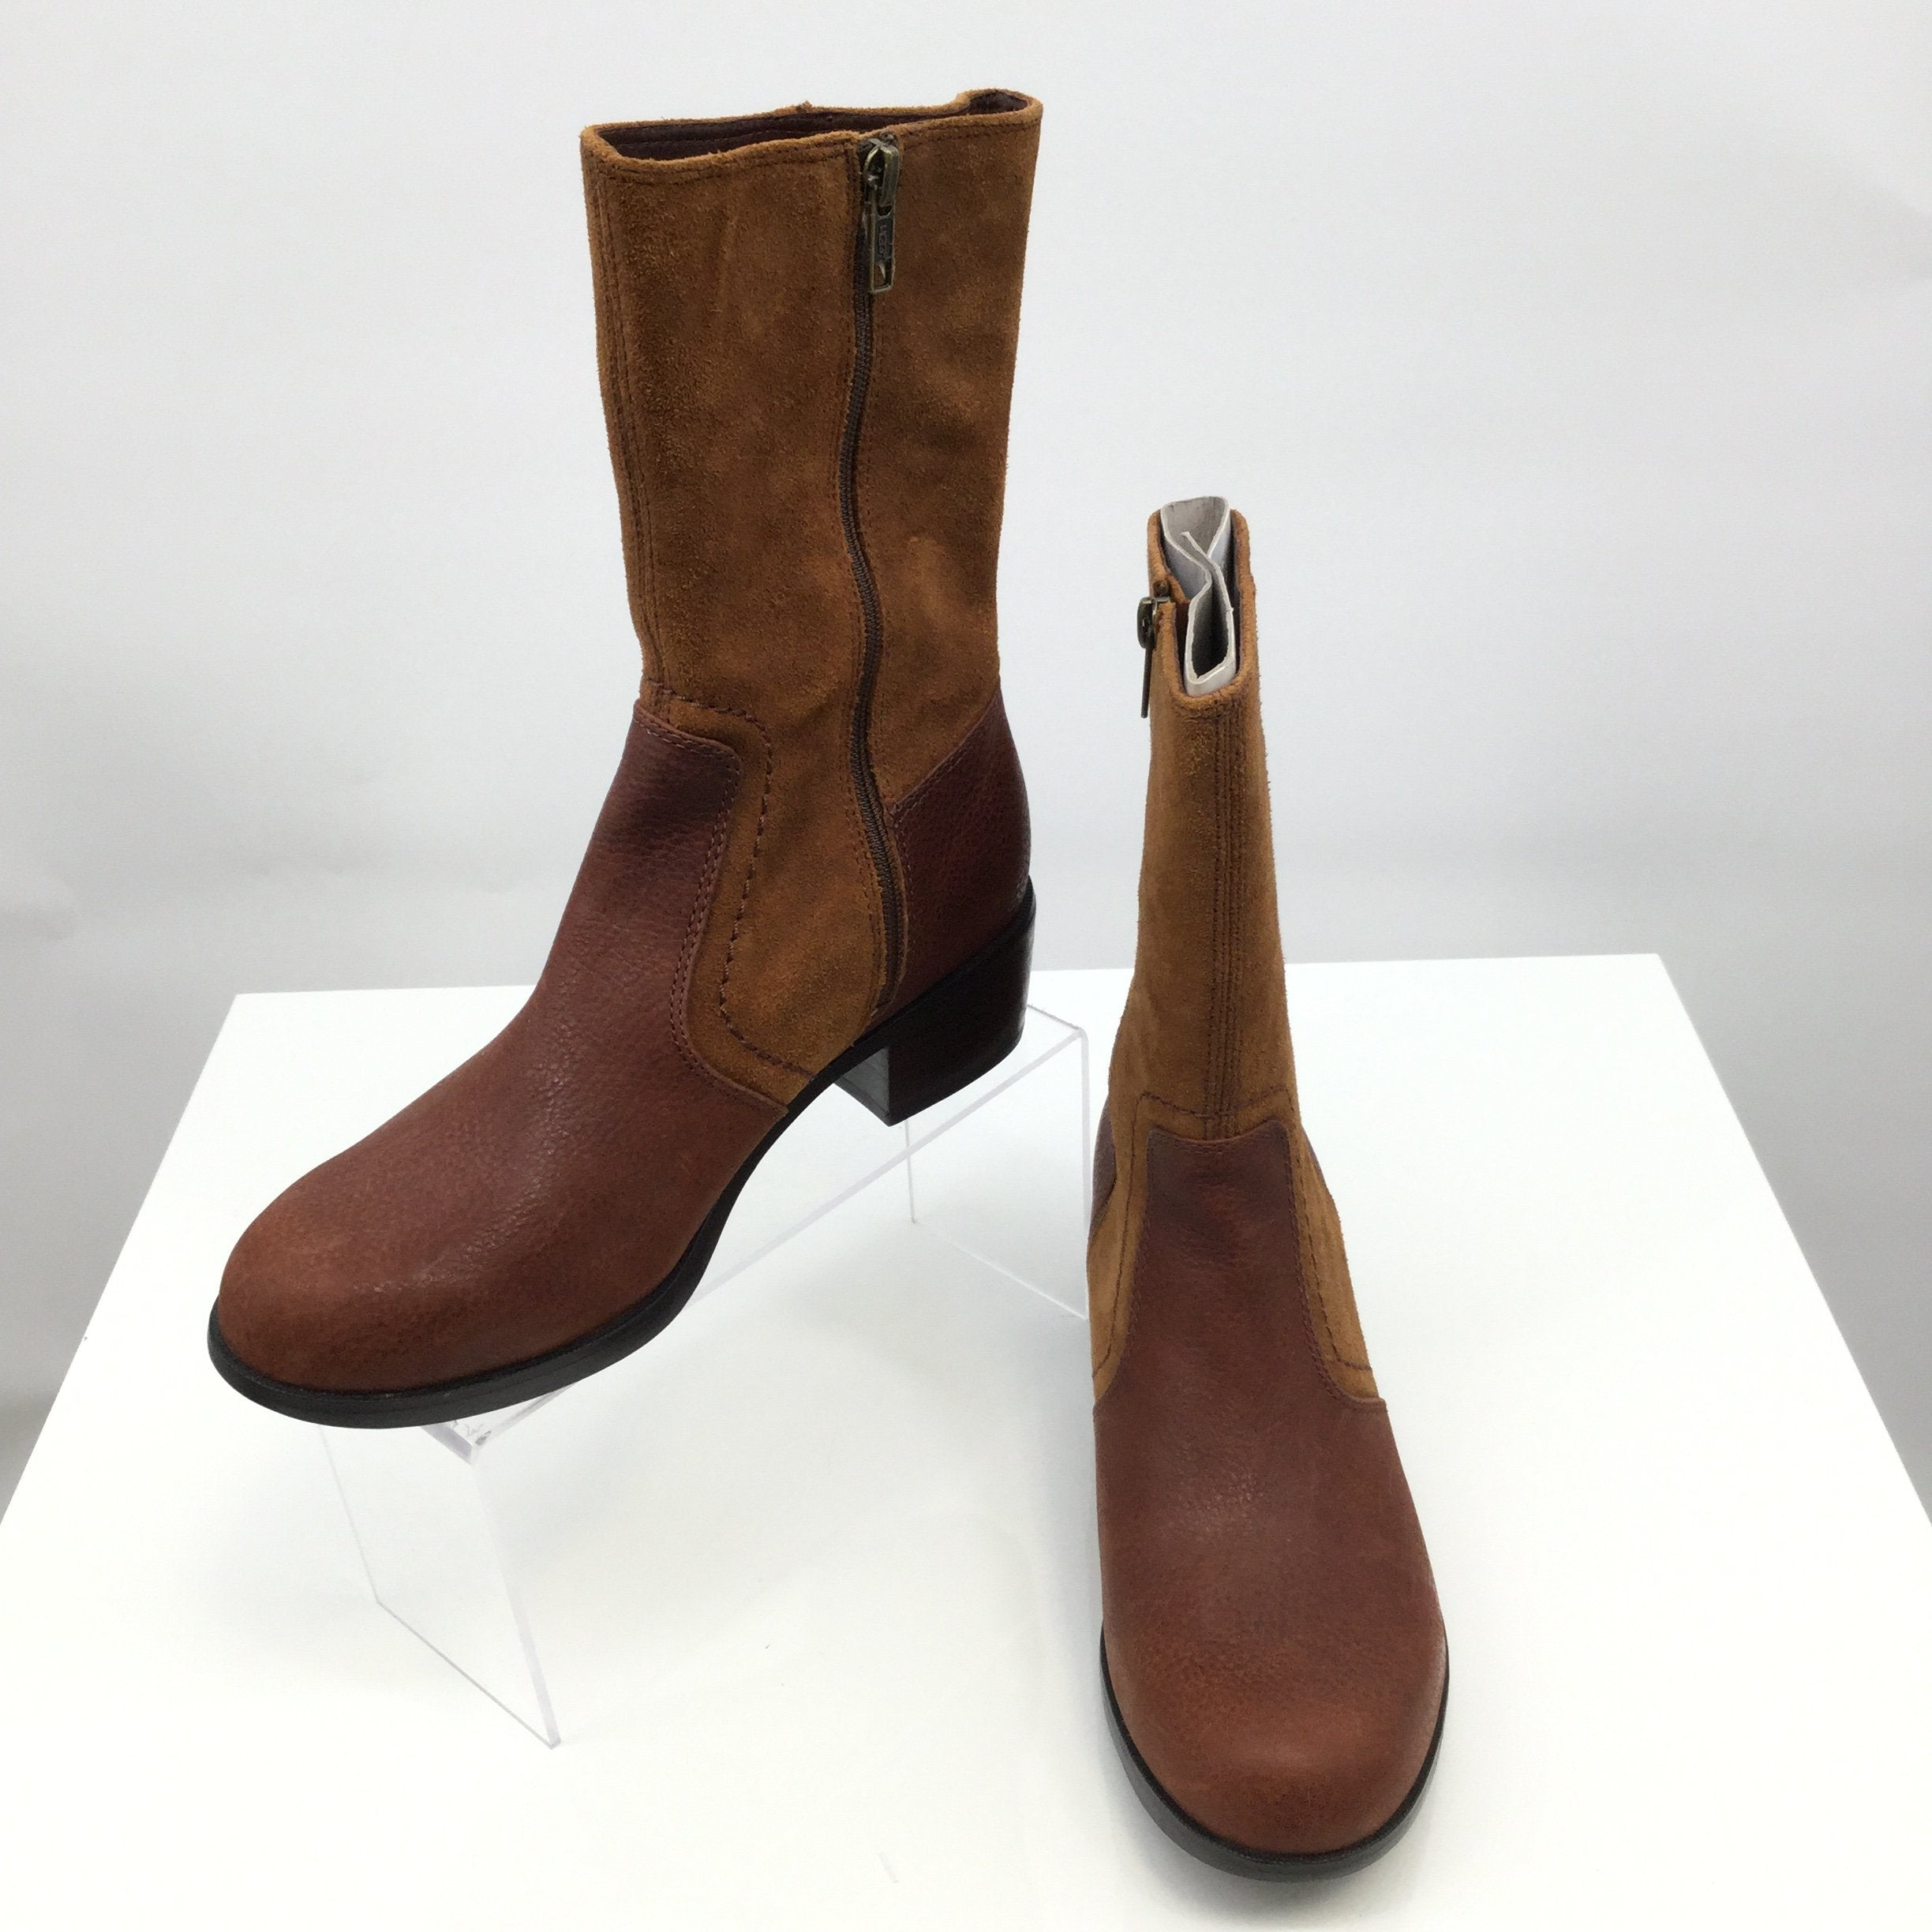 Ugg Boots Knee Size:8 - <P>NEW! UGG TWO-TONED BROWN MID BOOTS. SIZE 8. ZIPPER UP THE SIDE. SUEDE AND PEPPLED LEATHER. 1.75